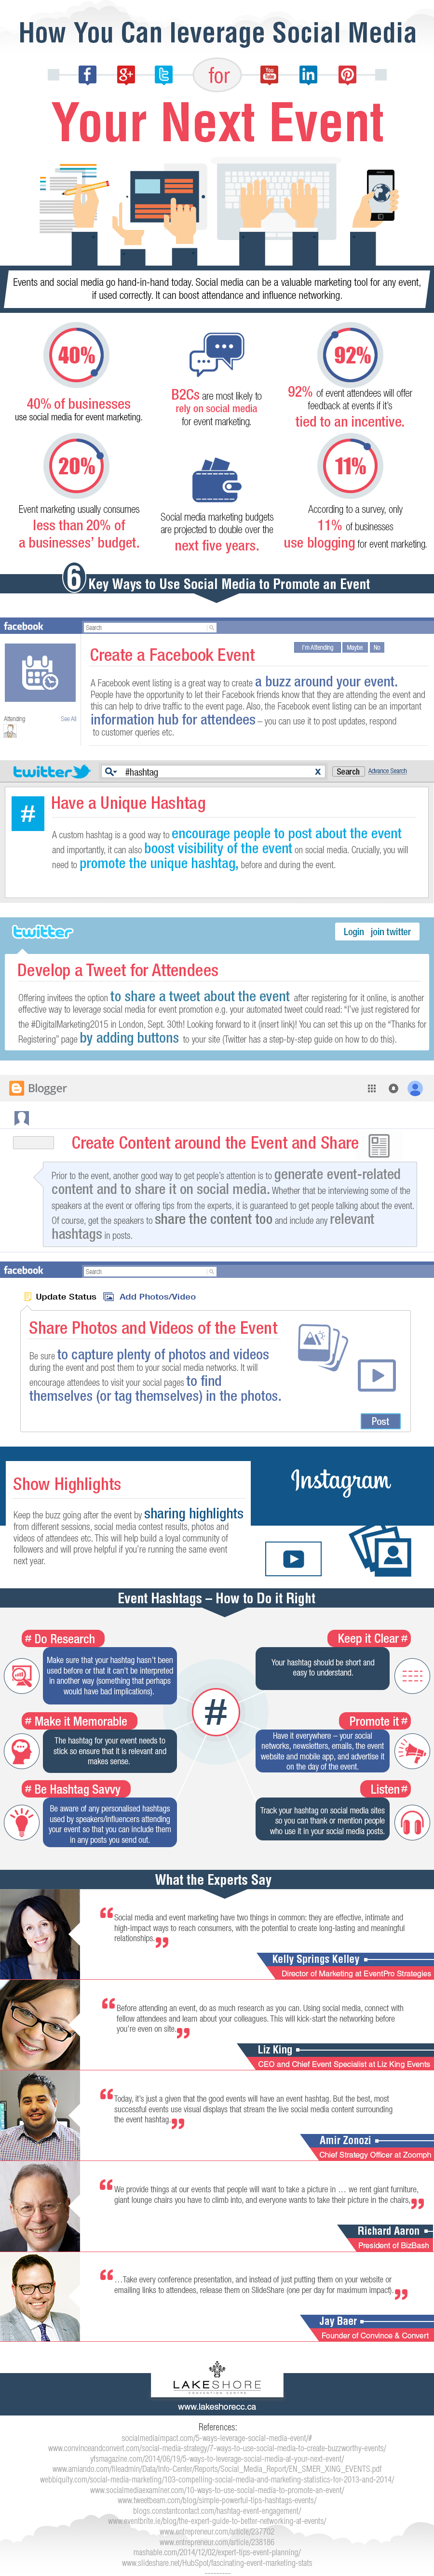 Maximize Your ROI from Your Next Event with Social Media